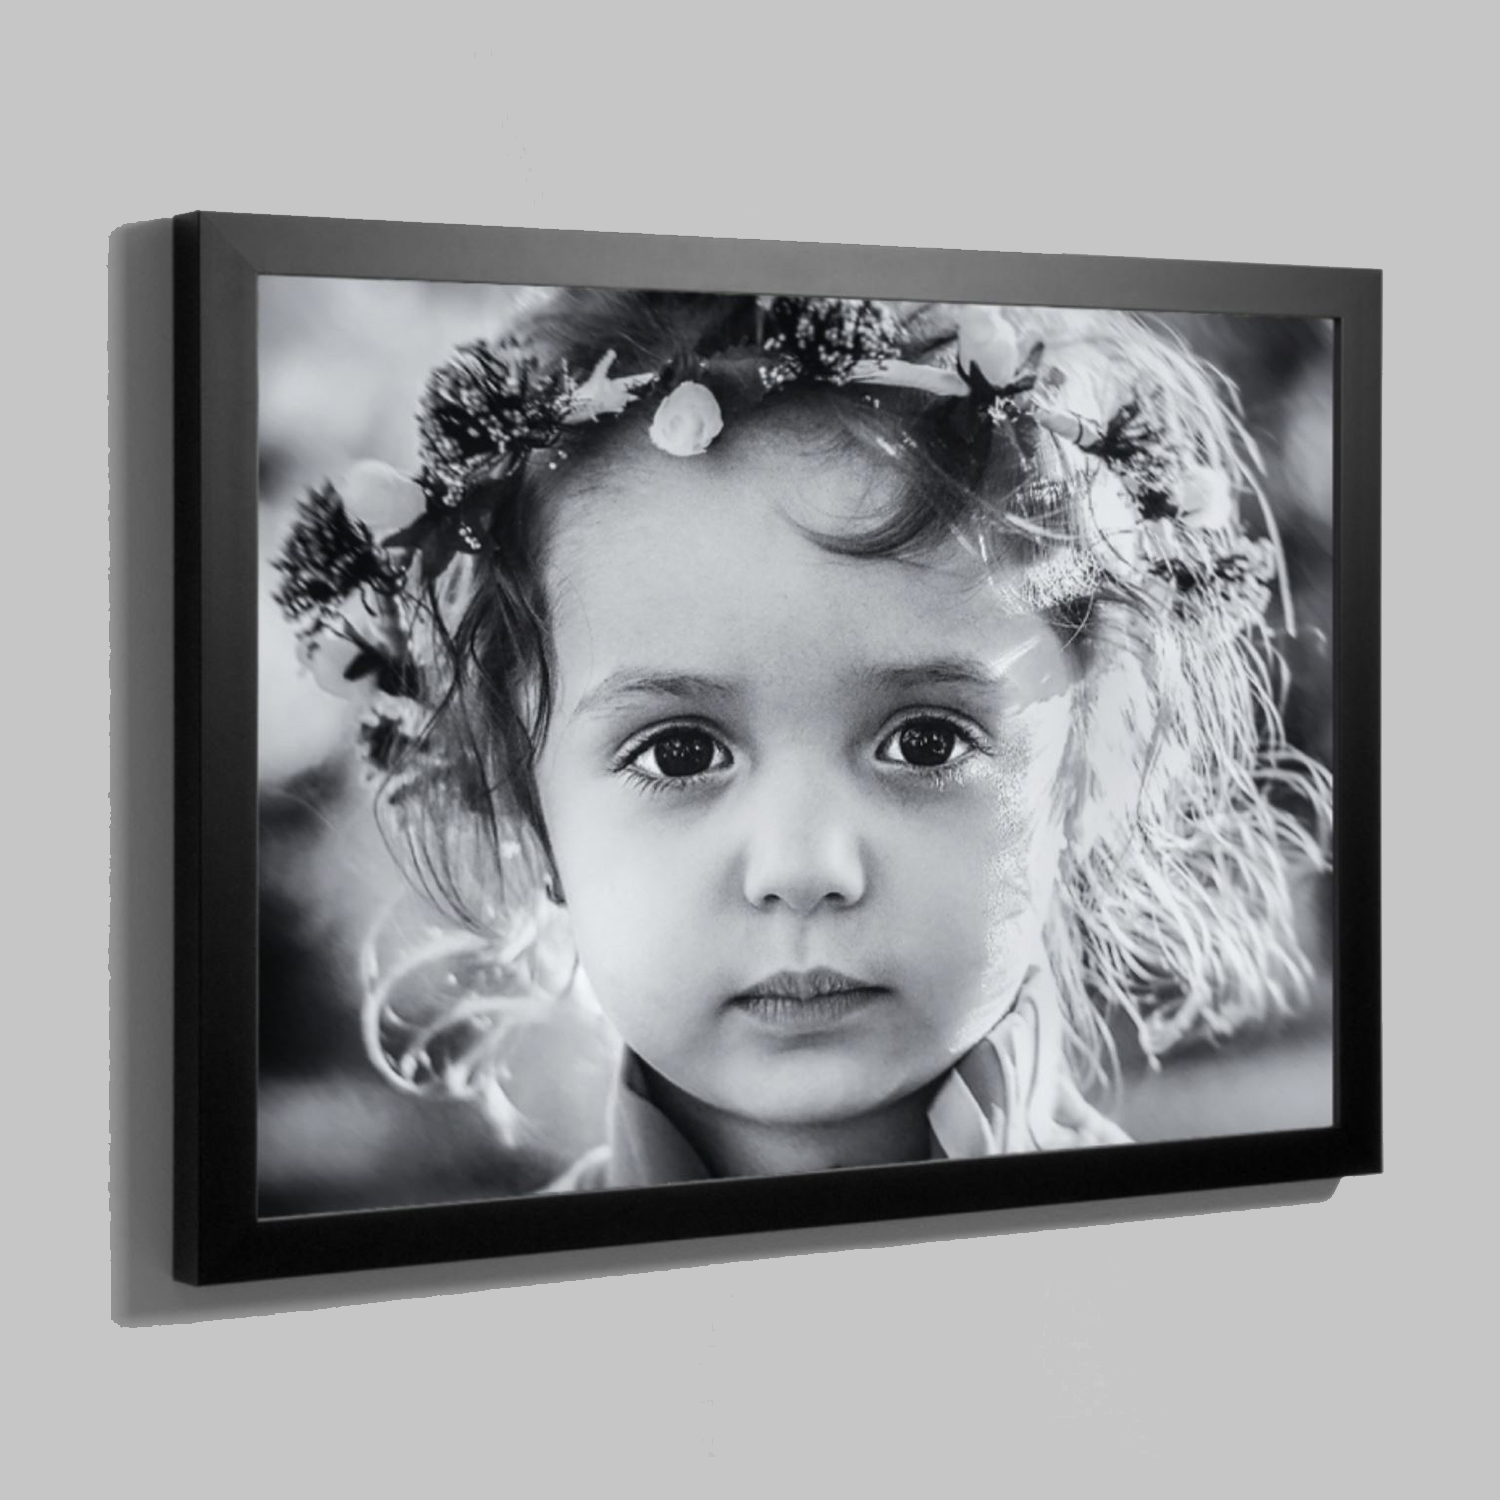 large-format-portrait-photo-printing-croydon